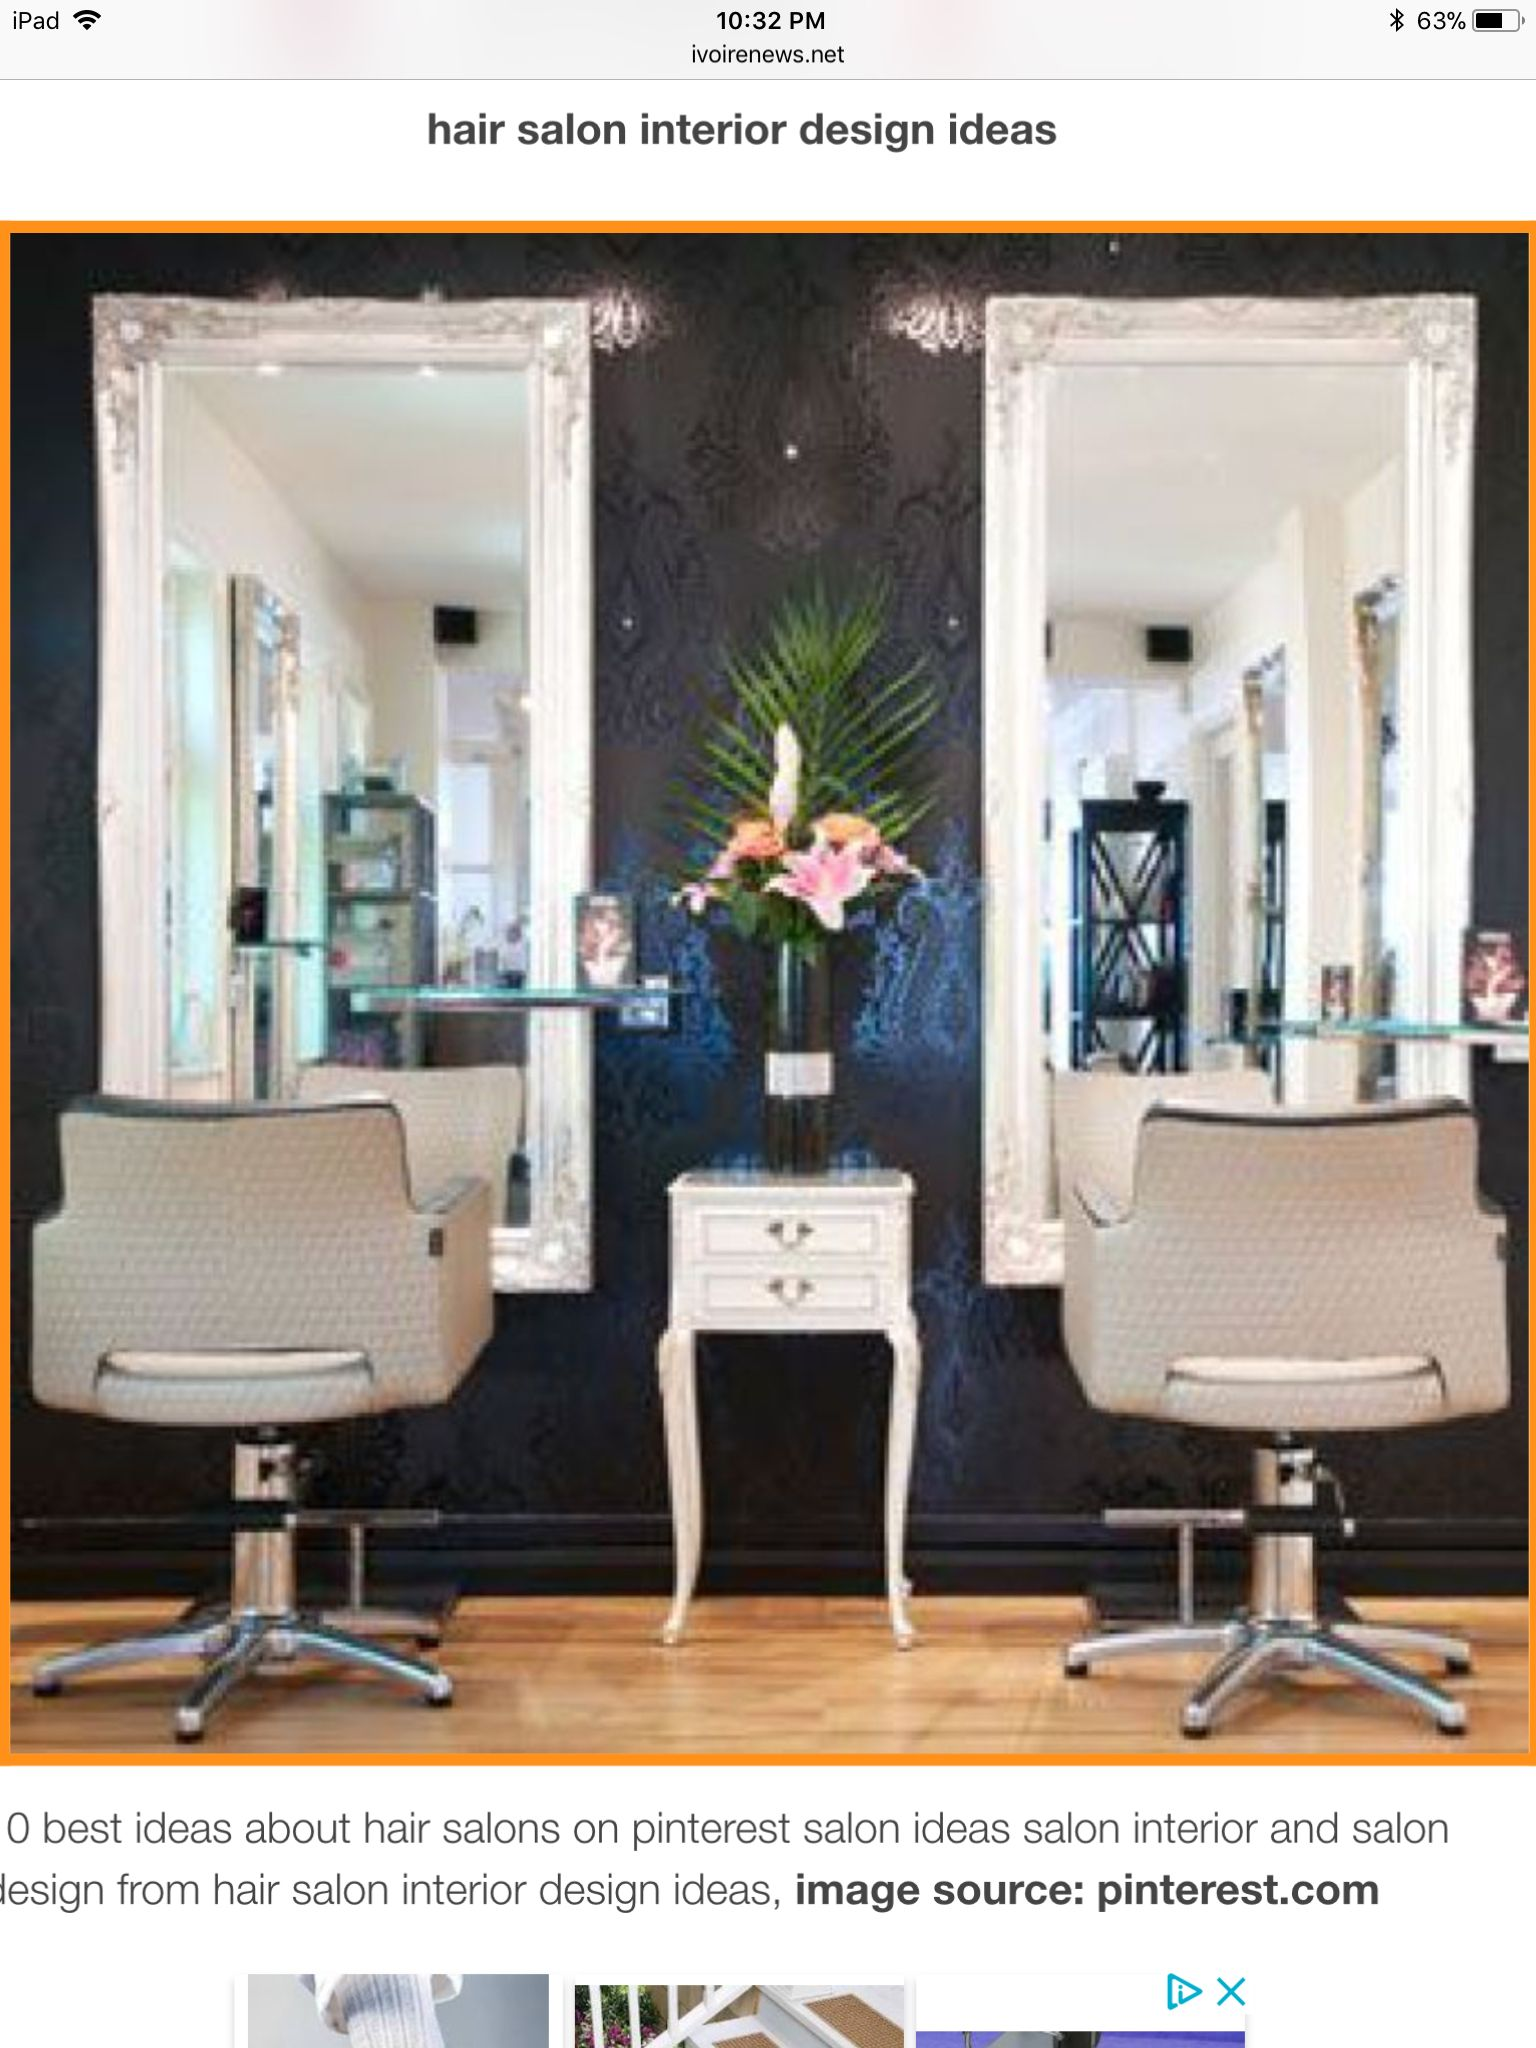 Salon mirrors framed mirrors salon interior design hair salon interior salon studio